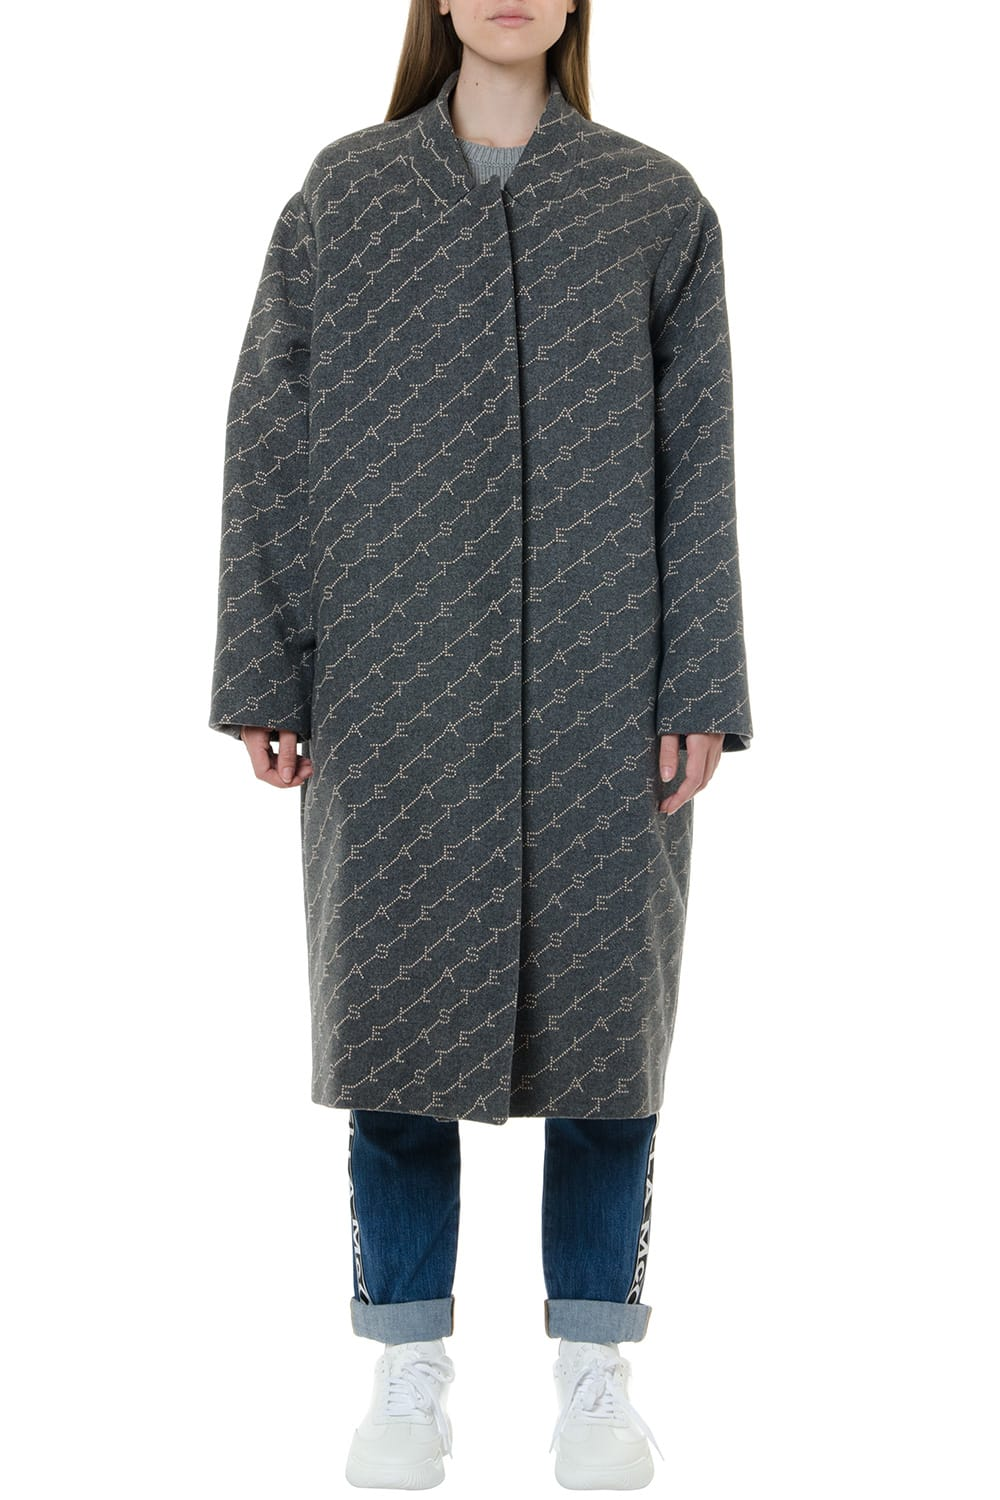 Stella McCartney Kailey Granite Coat With Monogram